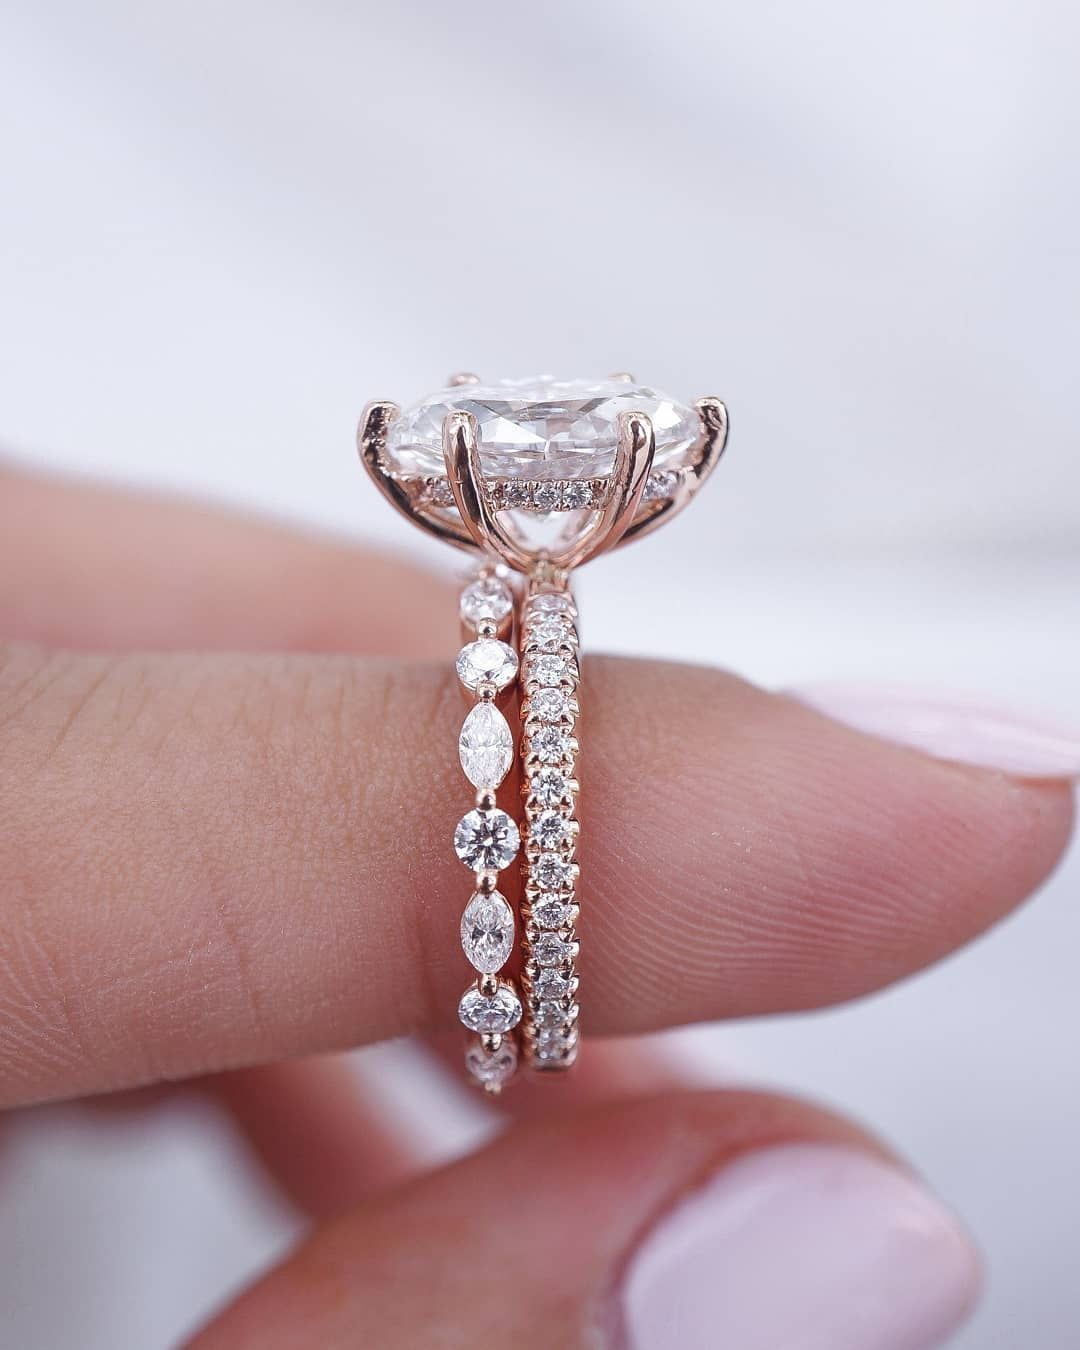 Engagement Rings Gallery On Instagram Now This Is An Absolute Perfection Who S In Love Wi With Images Wedding Rings Engagement Diamond Wedding Bands Wedding Rings